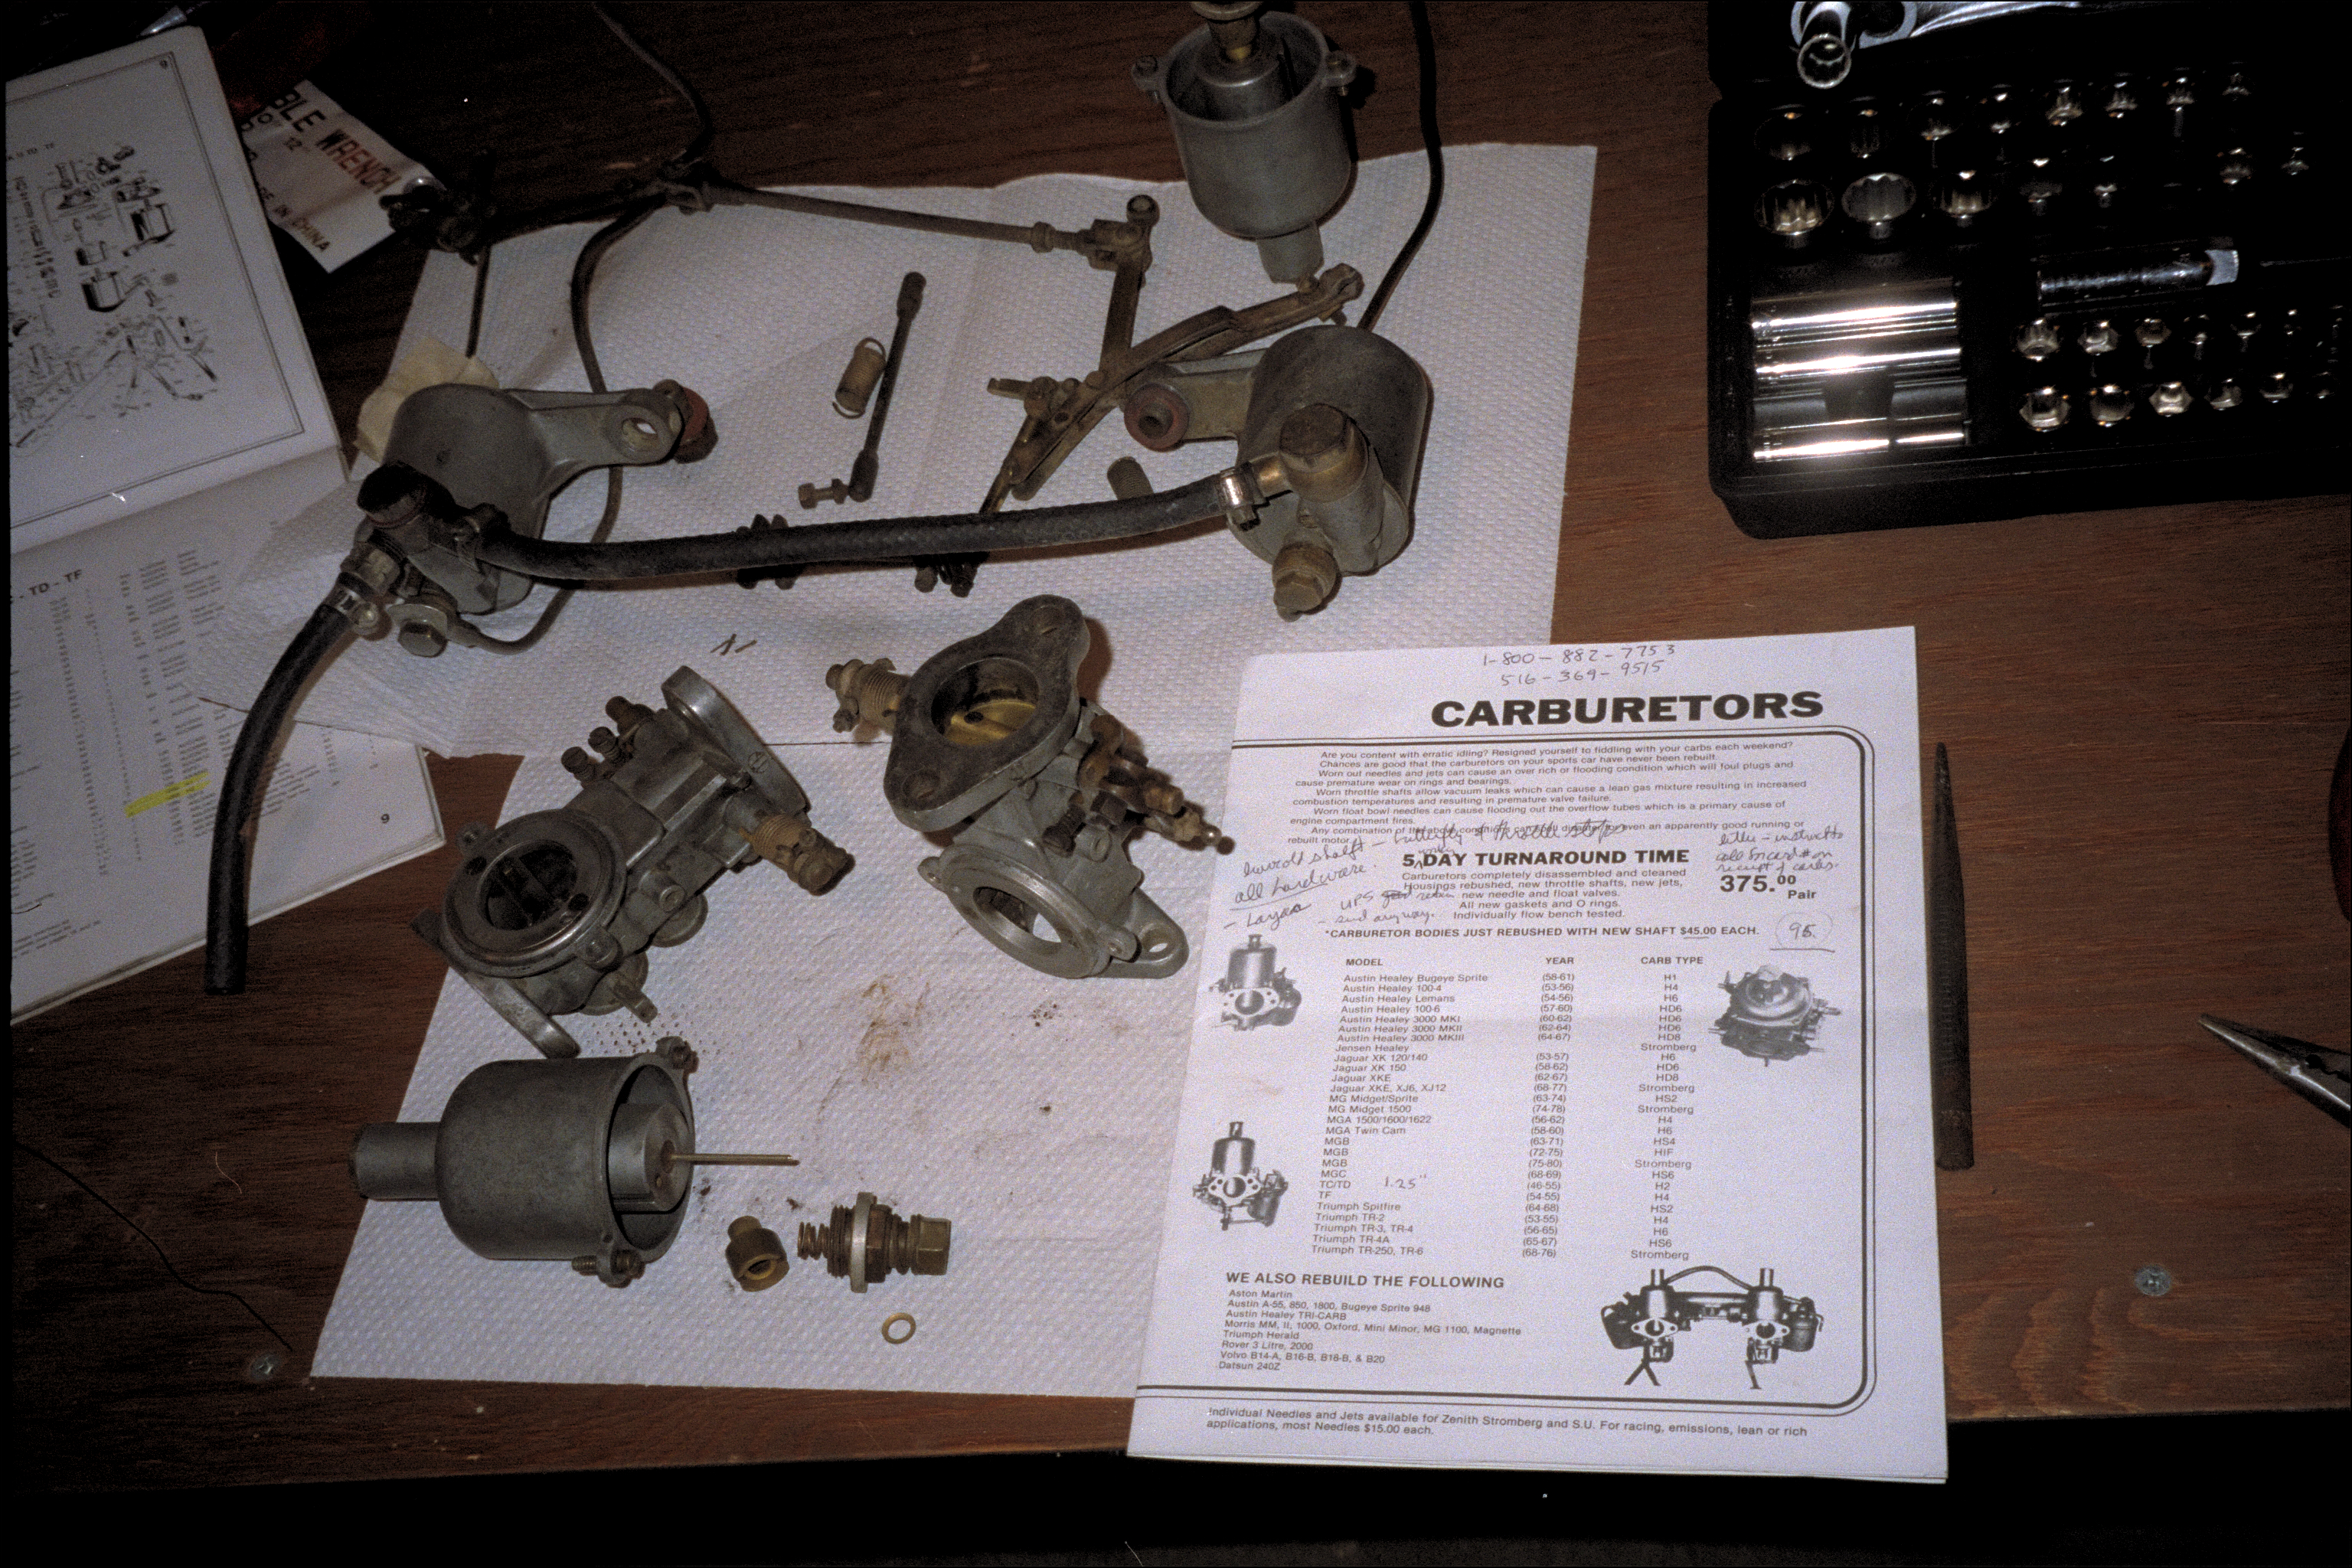 SU Carburetors, disassembled for rebuilding